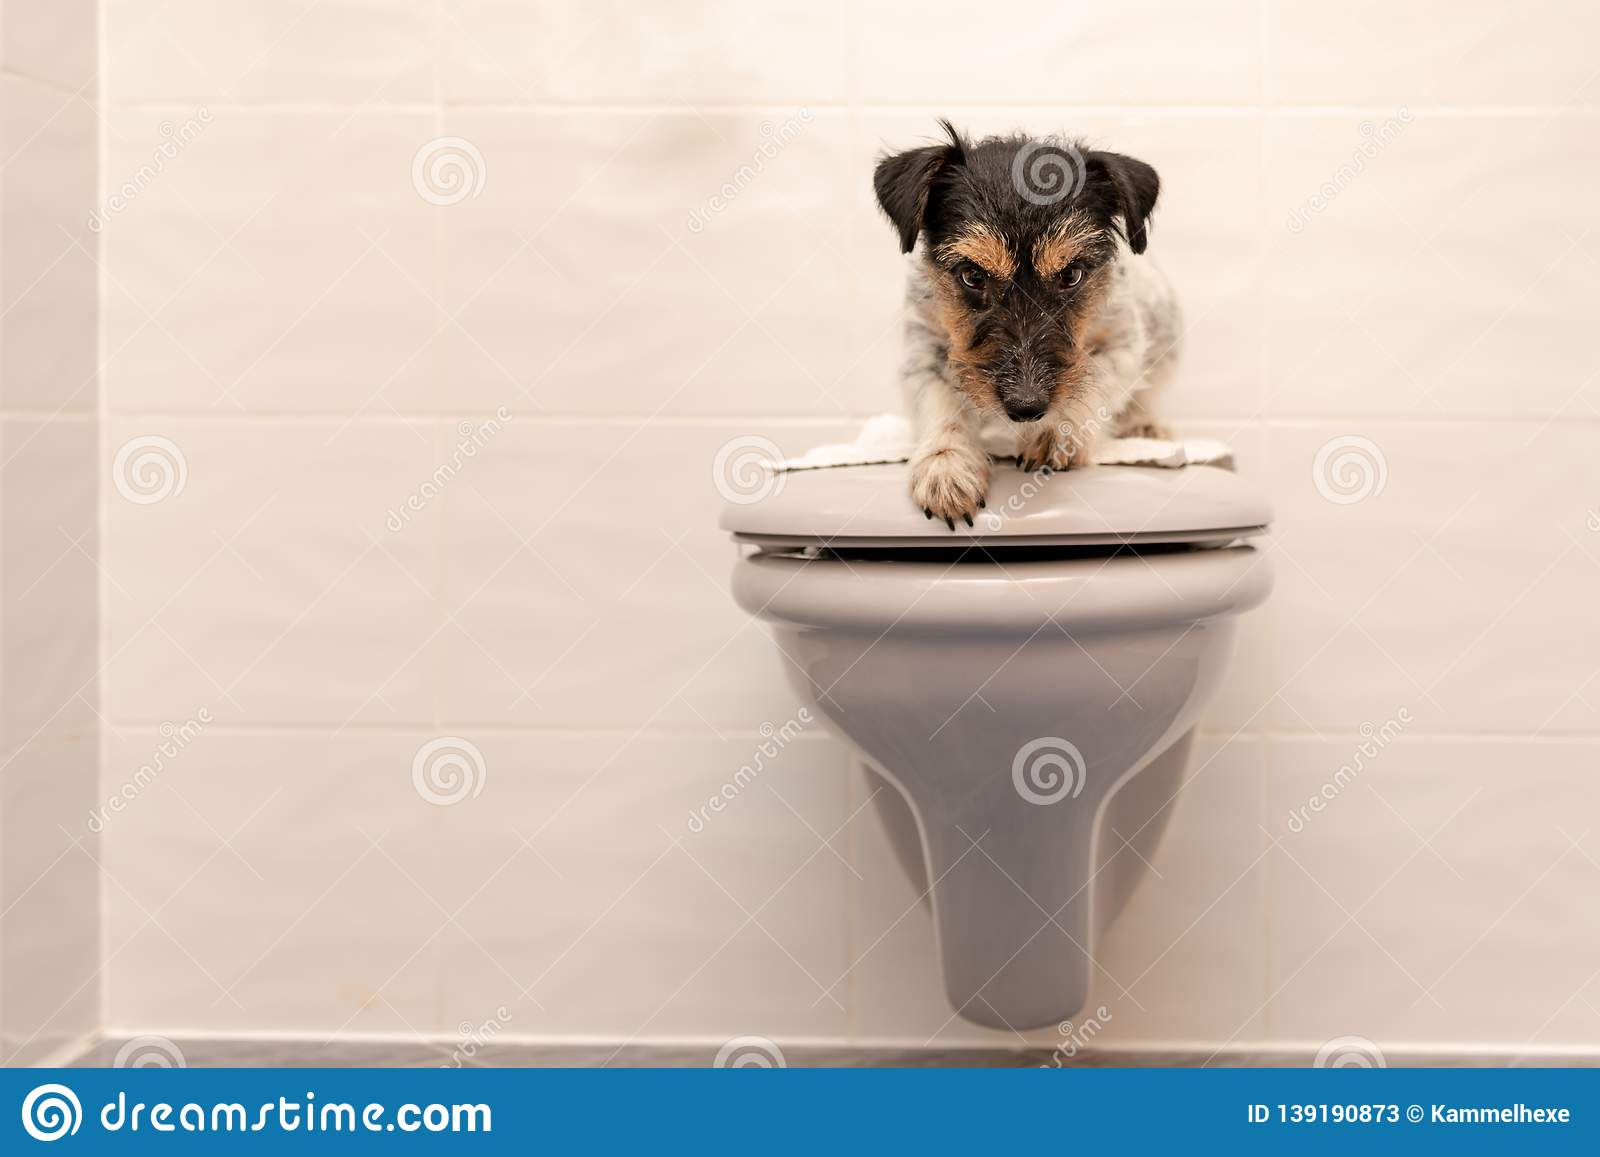 Dog lies on the toilet lid and guards. Jack Russell Terrier 3 years old